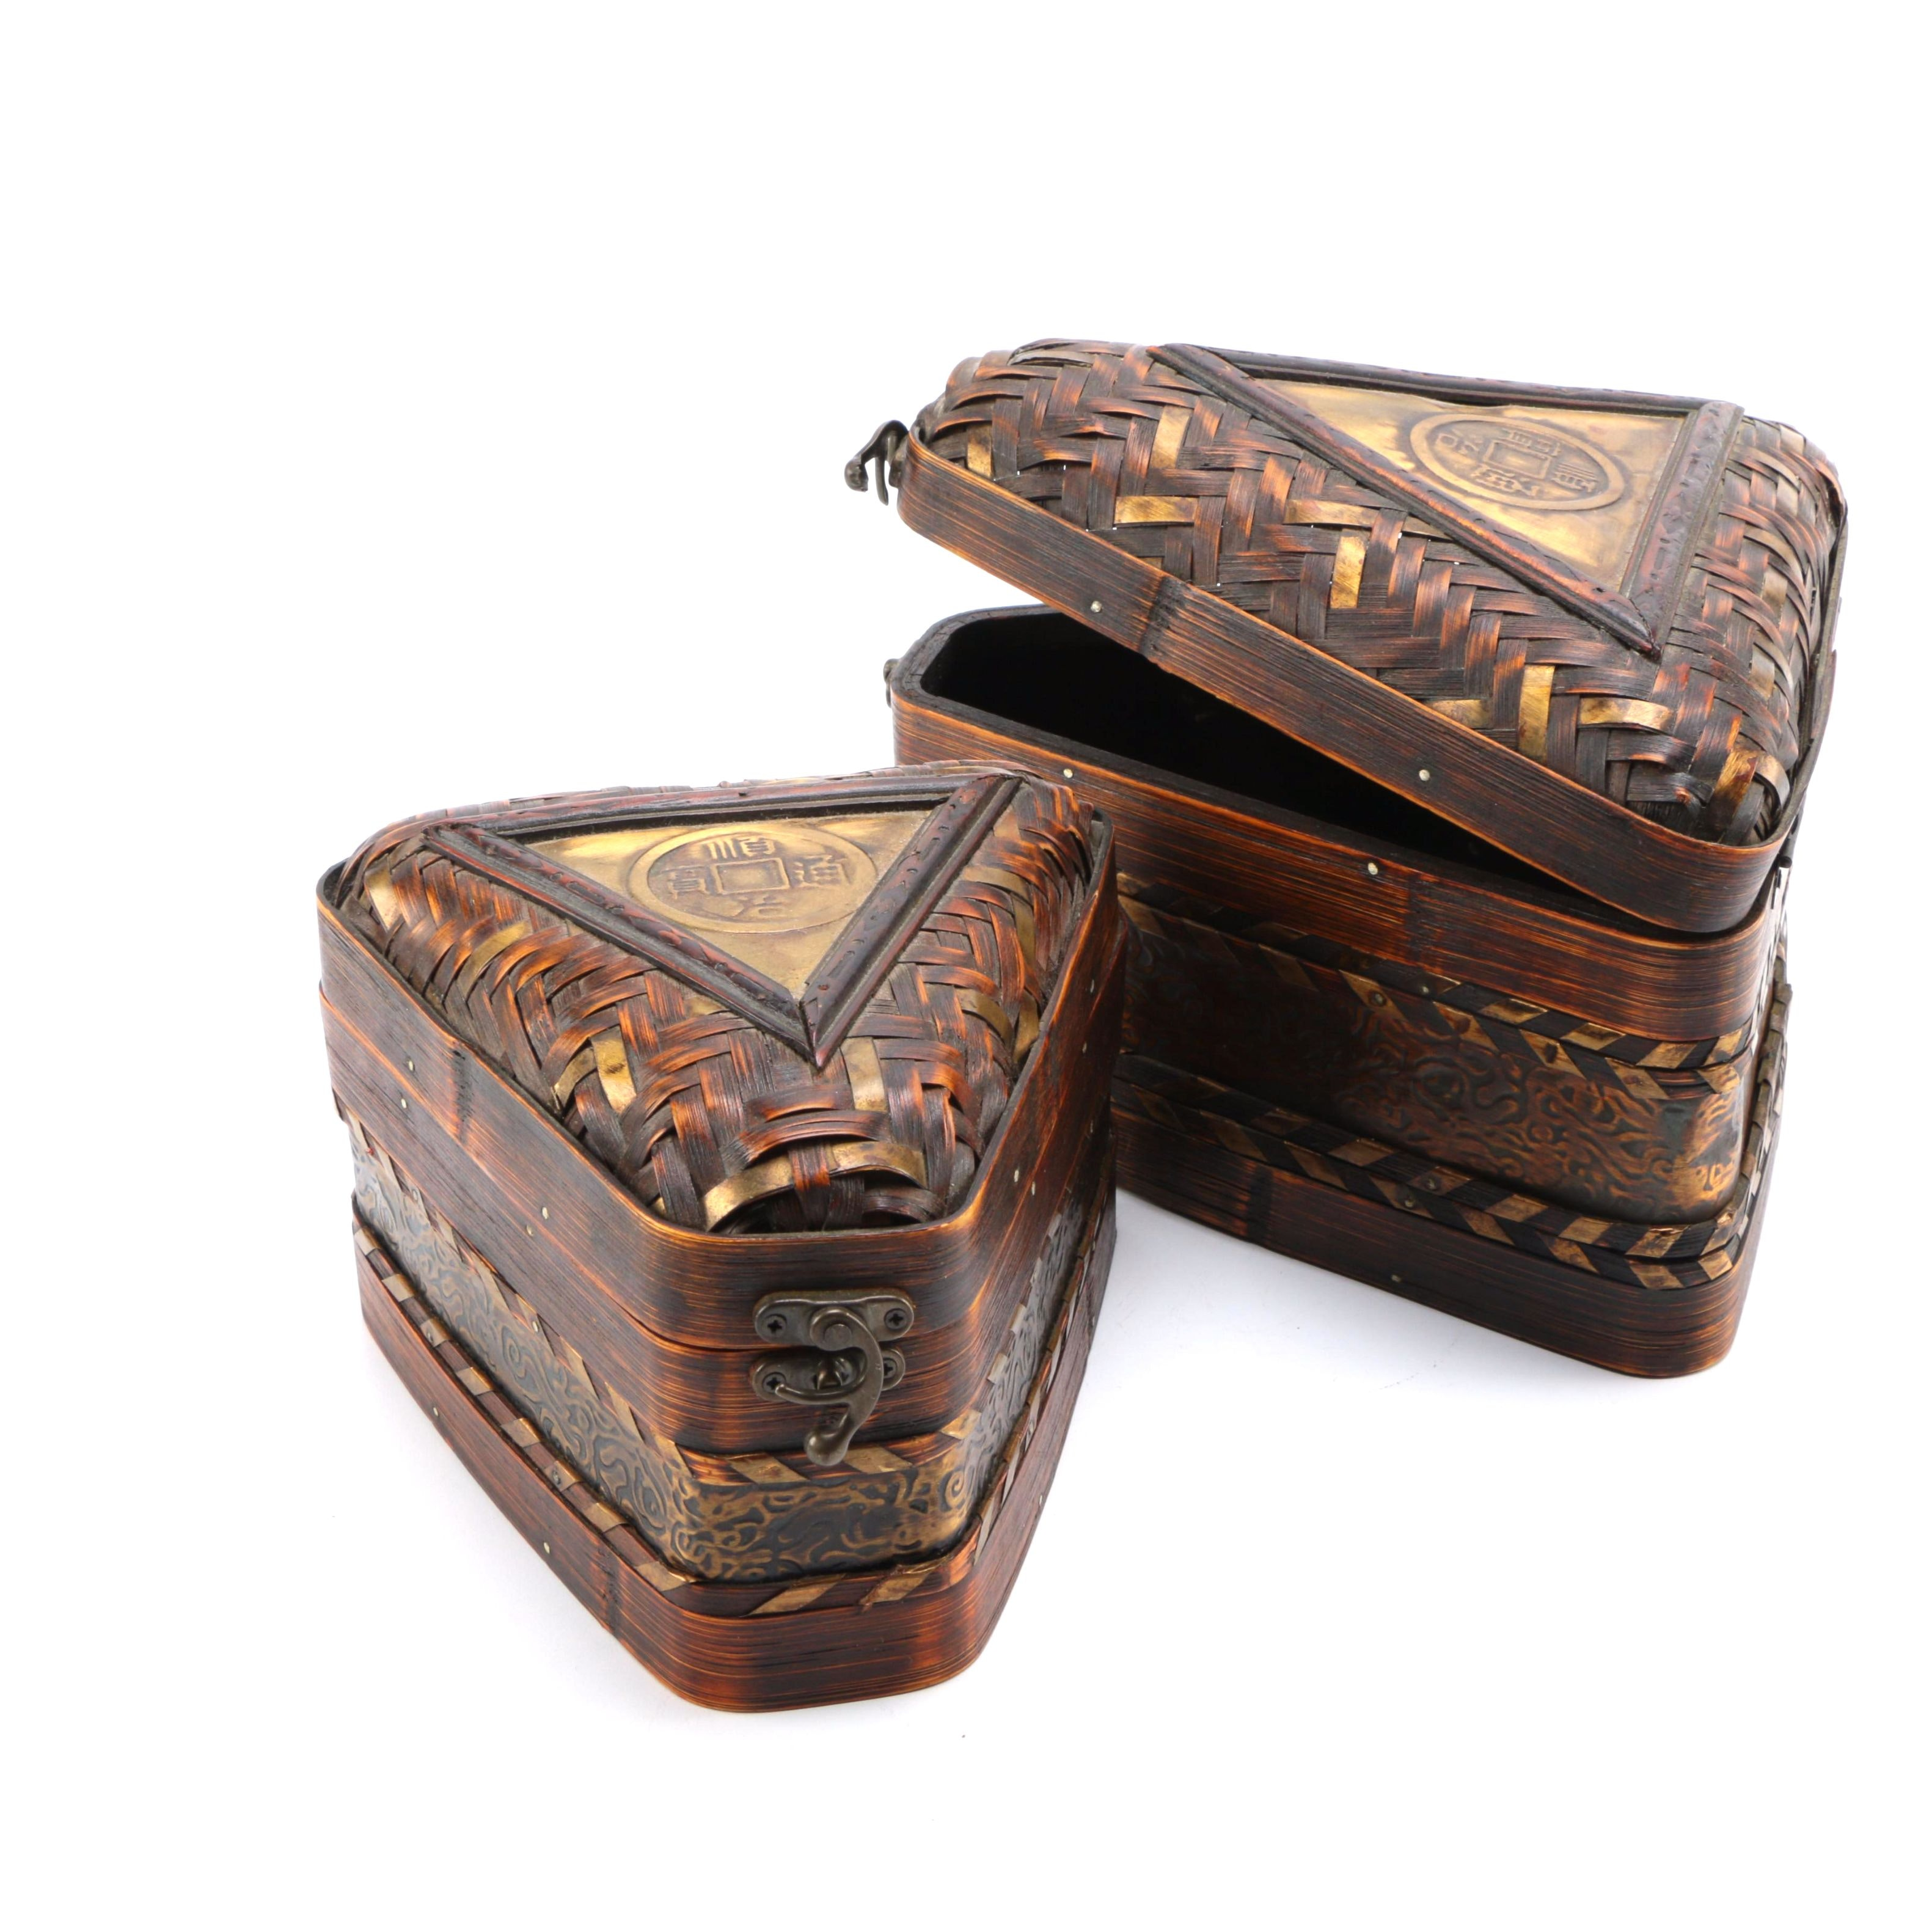 Chinese Inspired Wicker Storage Boxes